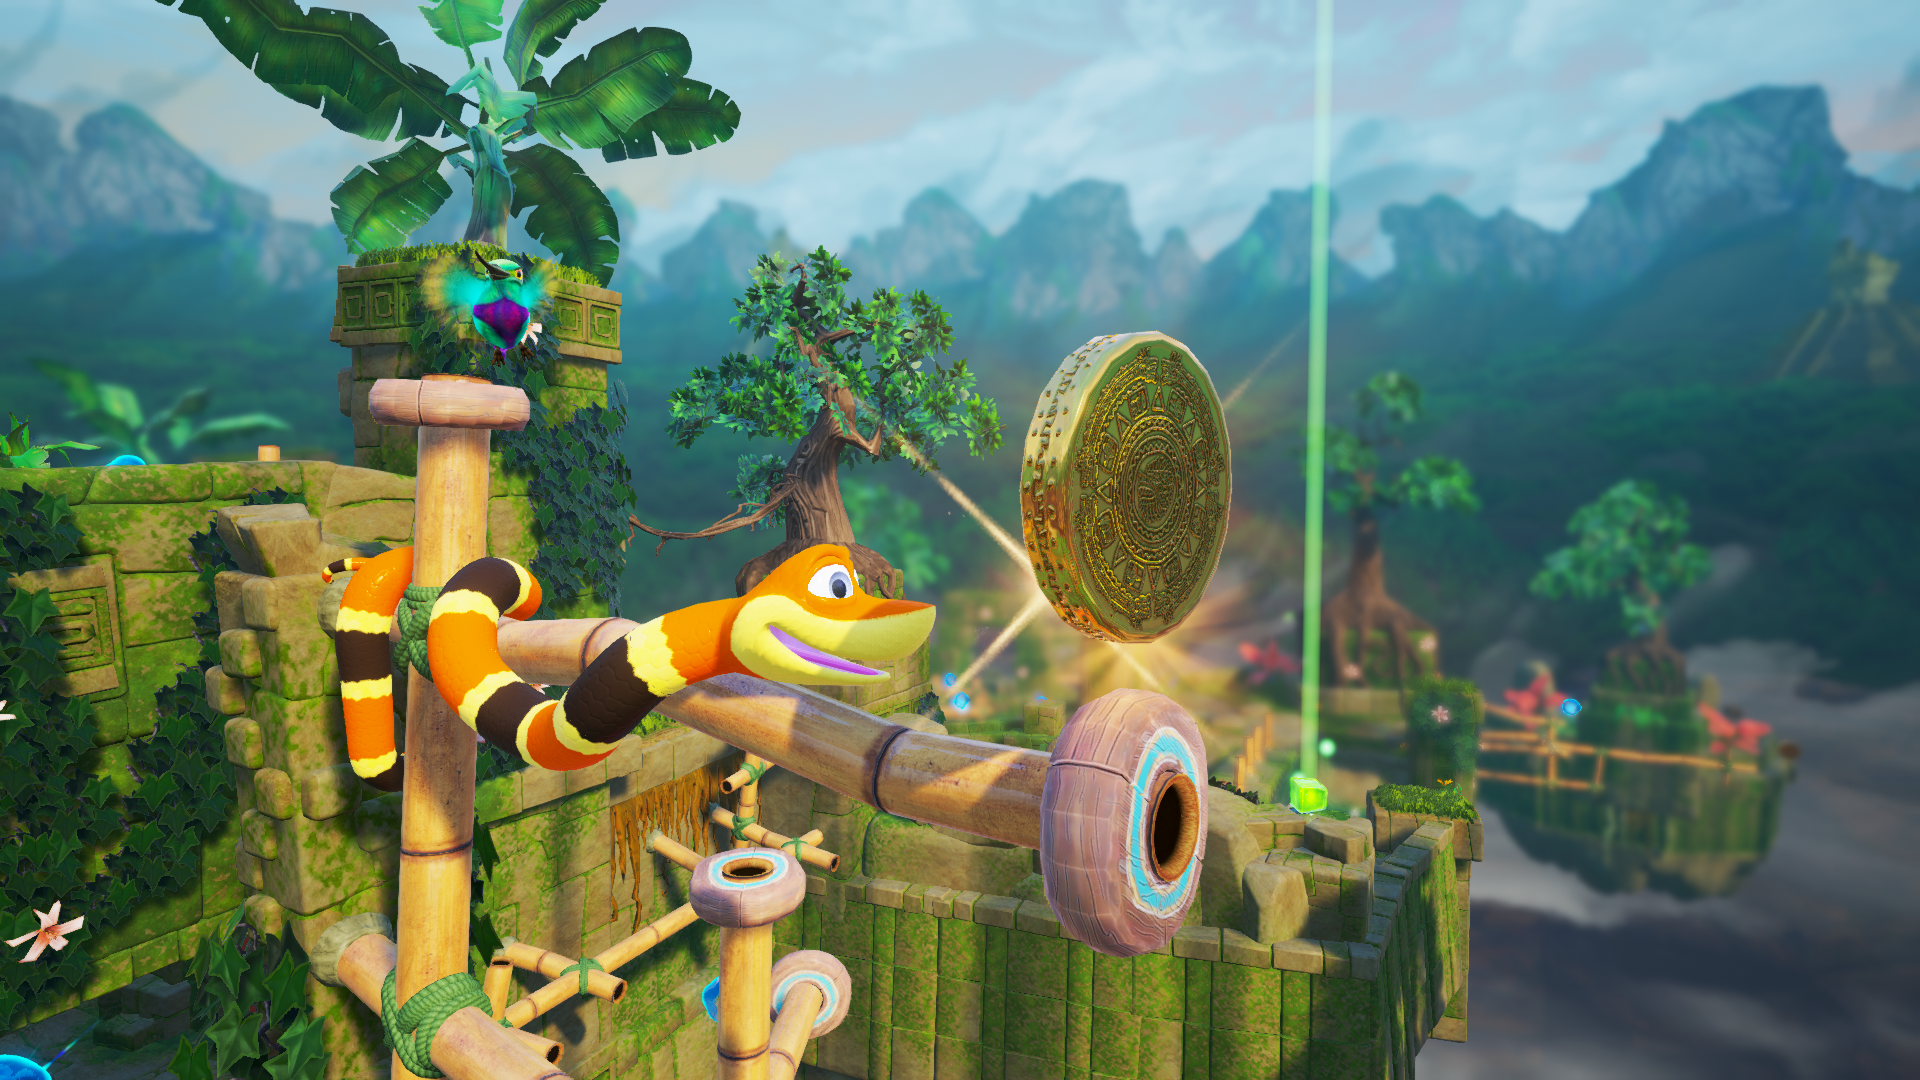 Exploring the world in Snake Pass